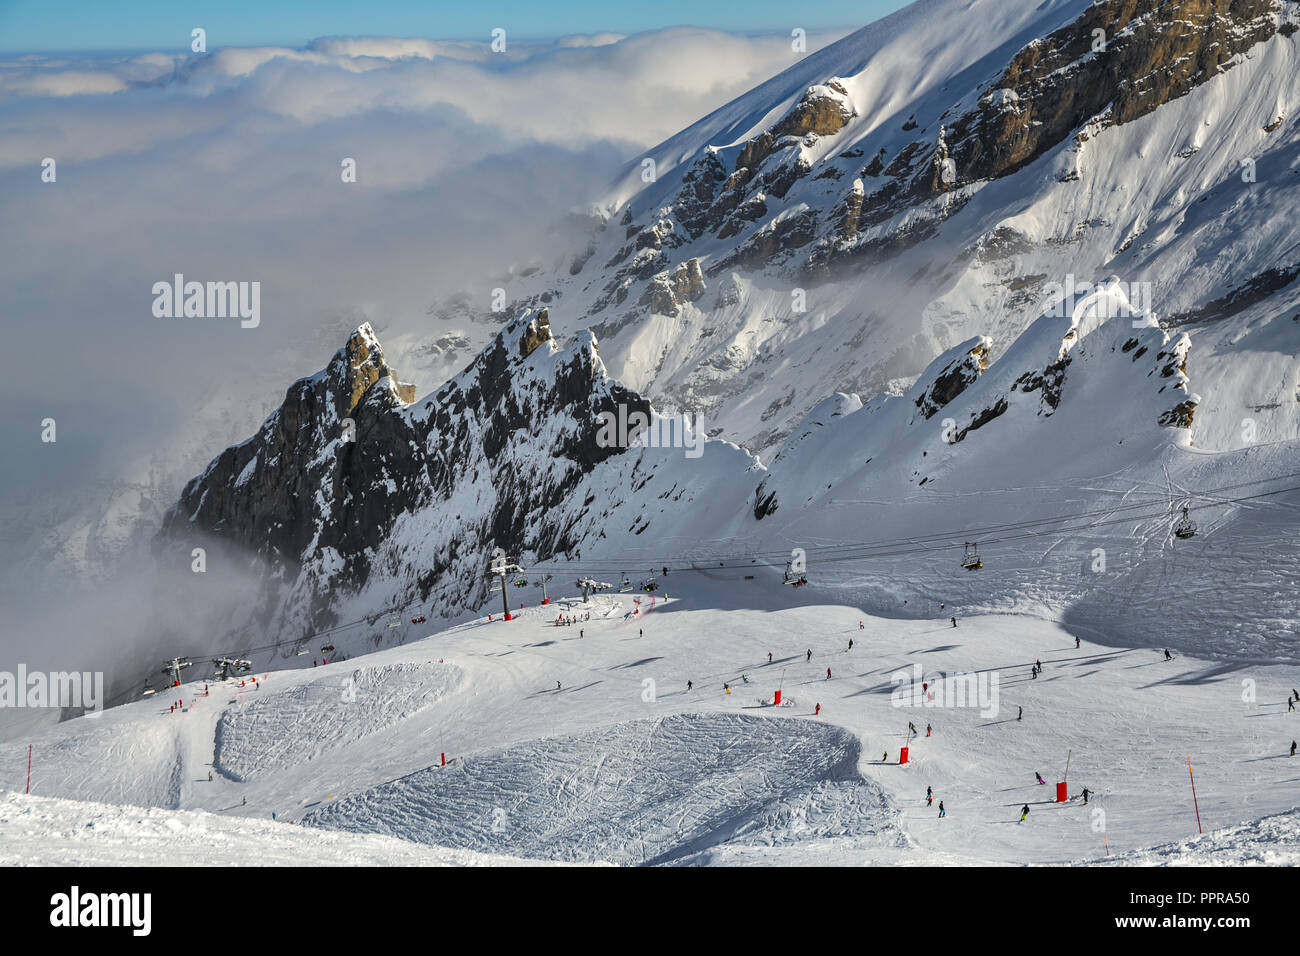 Gourette ski resort, Pyrenees Atlantiques, Aquitaine region, Ossau Valley, France - Stock Image